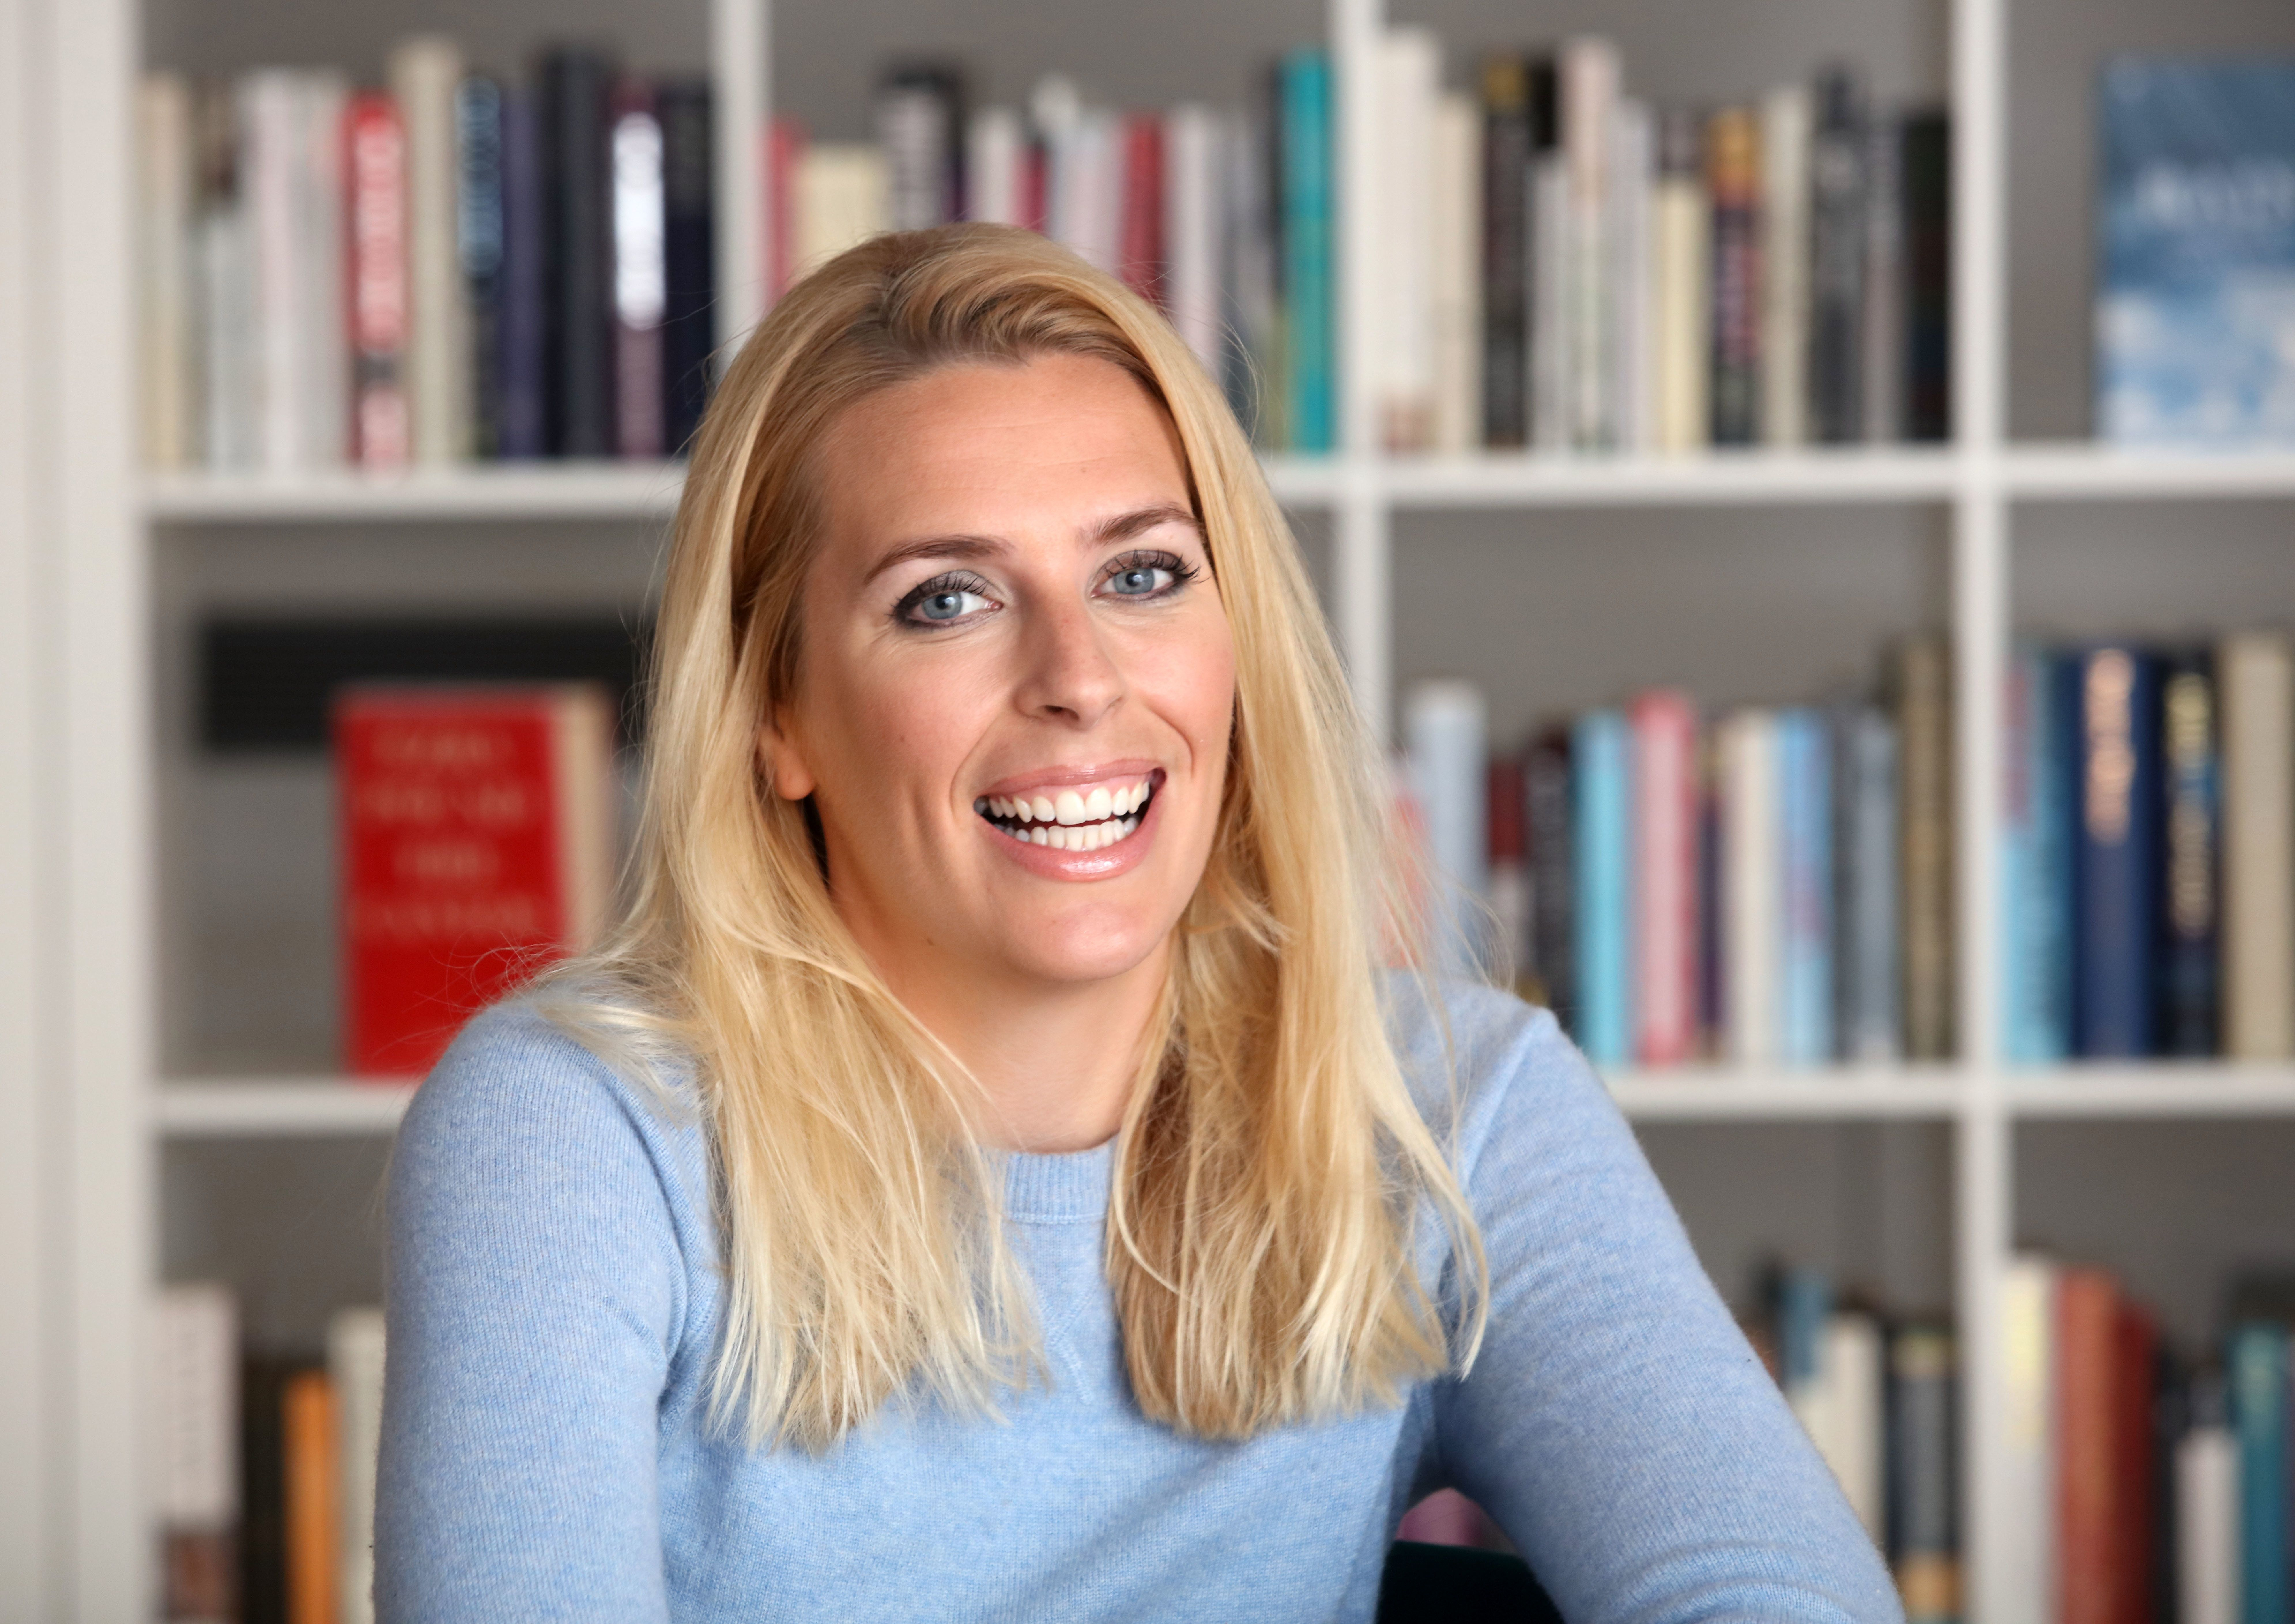 Sara Pascoe Says Being Wiser Consumers Will Beat Media